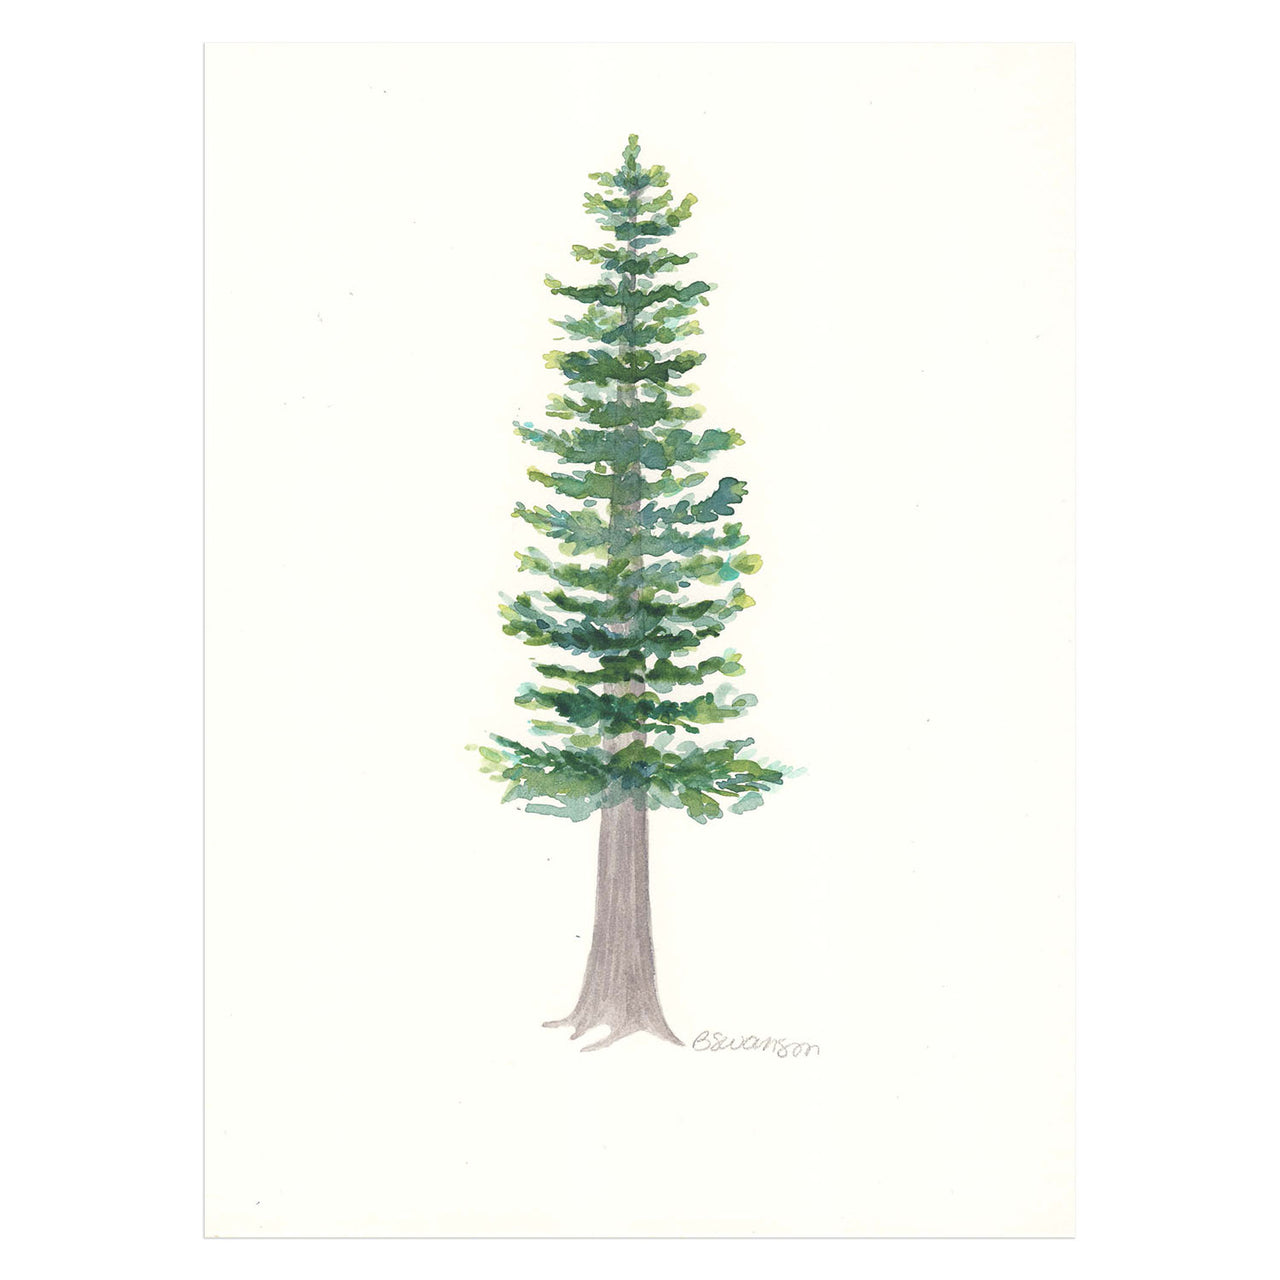 Pacific Silver Fir Original Watercolor Painting